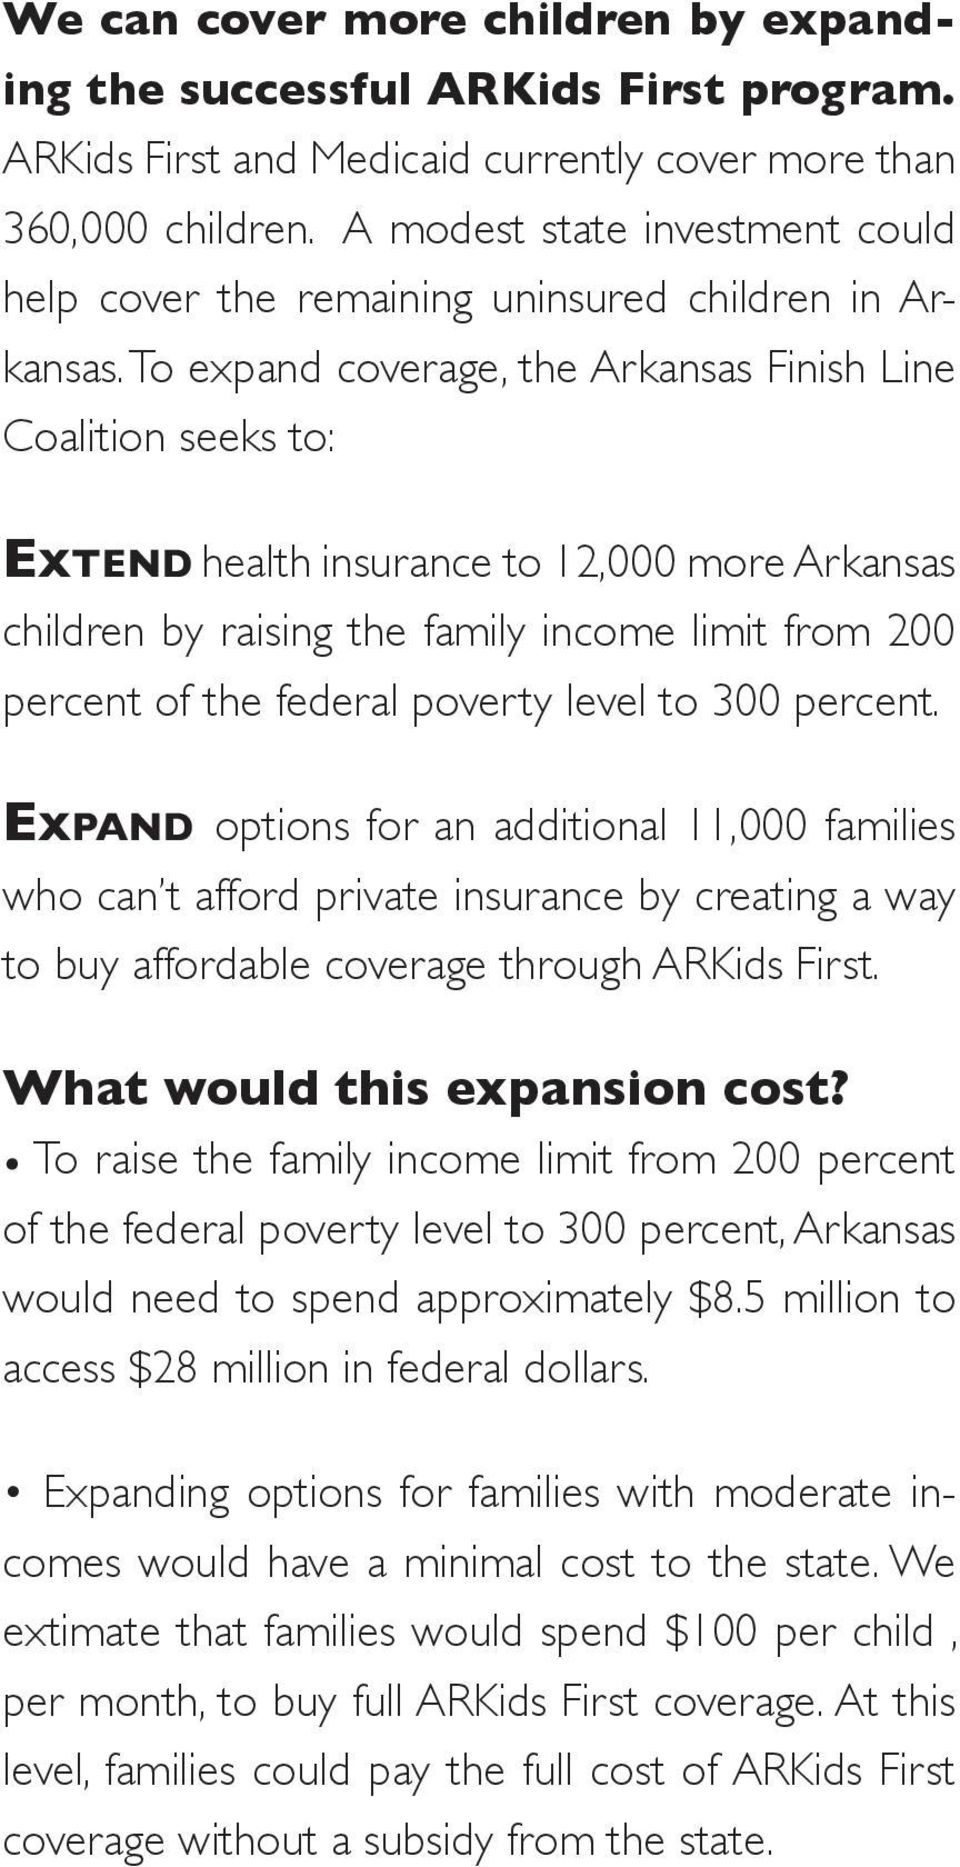 To expand coverage, the Arkansas Finish Line Coalition seeks to: Ex t e n d health insurance to 12,000 more Arkansas children by raising the family income limit from 200 percent of the federal